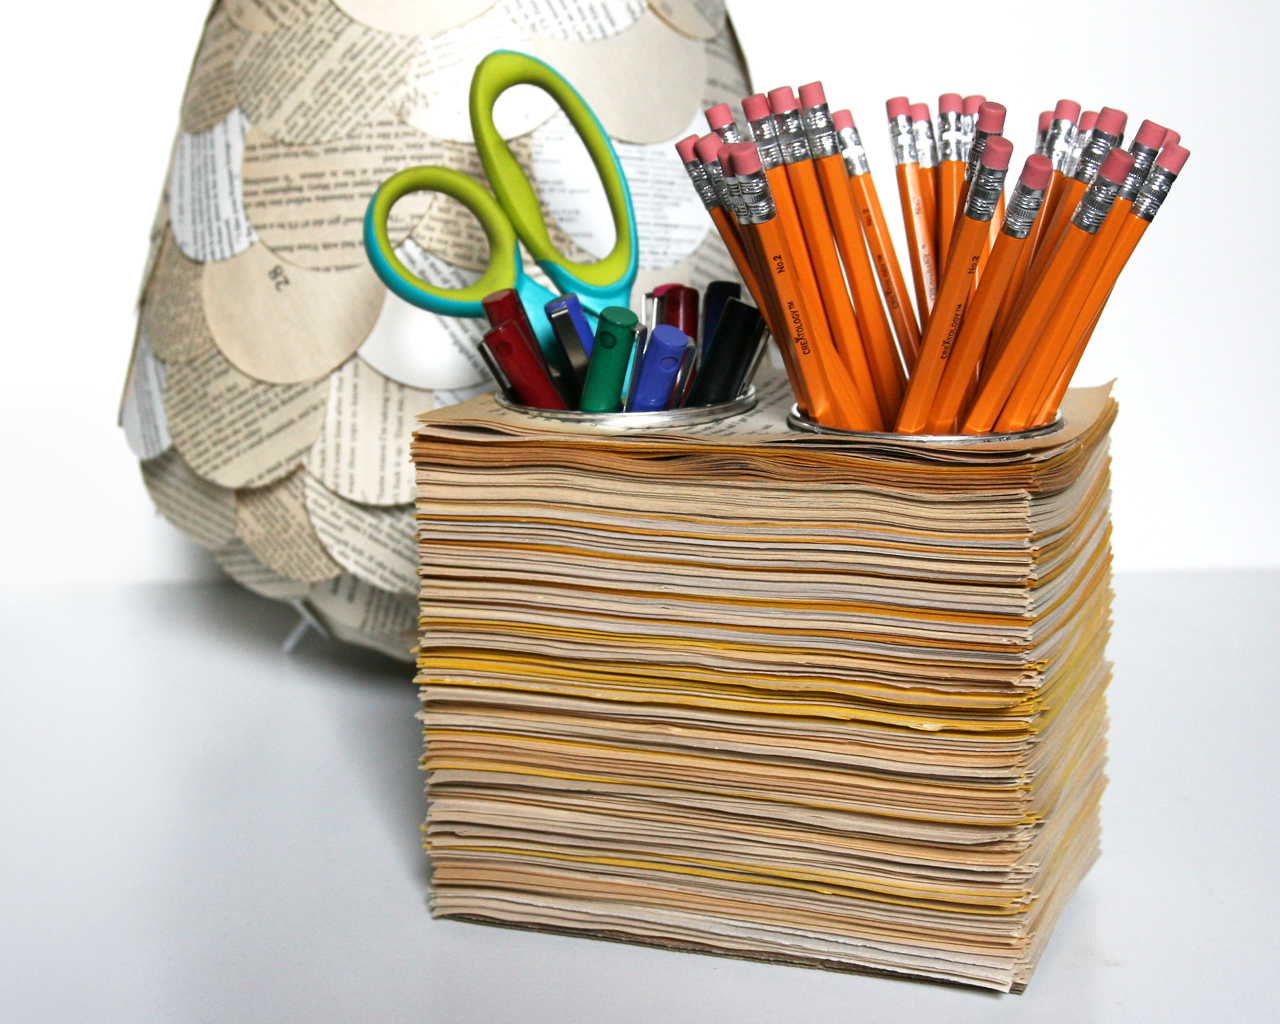 book-page-pencil-cups-1463874532.jpg